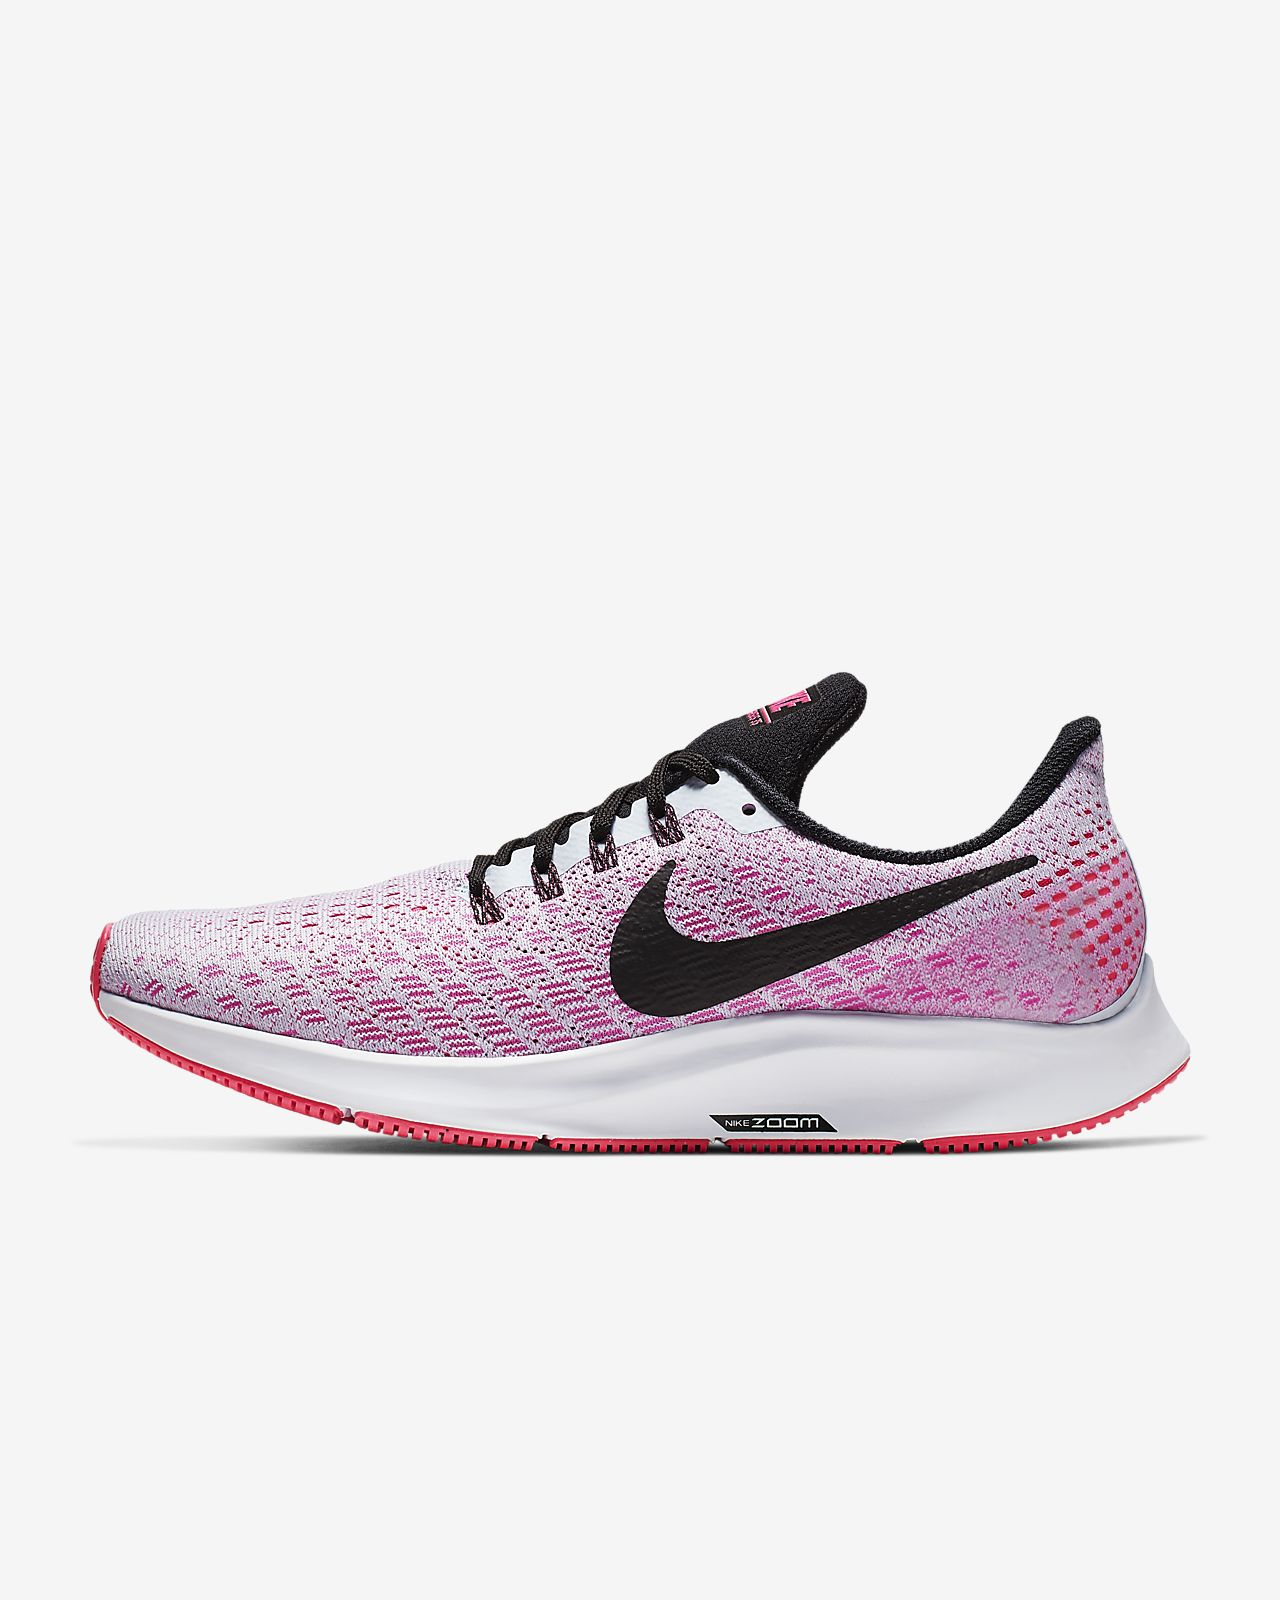 wholesale dealer 209ae cb956 Women s Running Shoe. Nike Air Zoom Pegasus 35